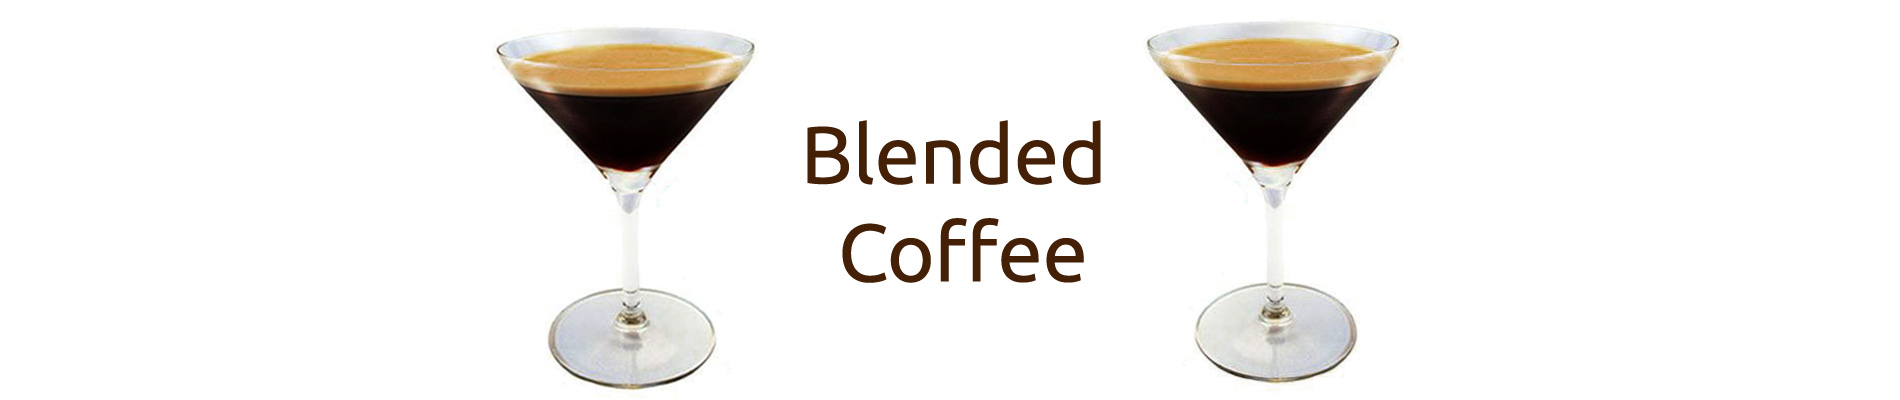 blended-coffee